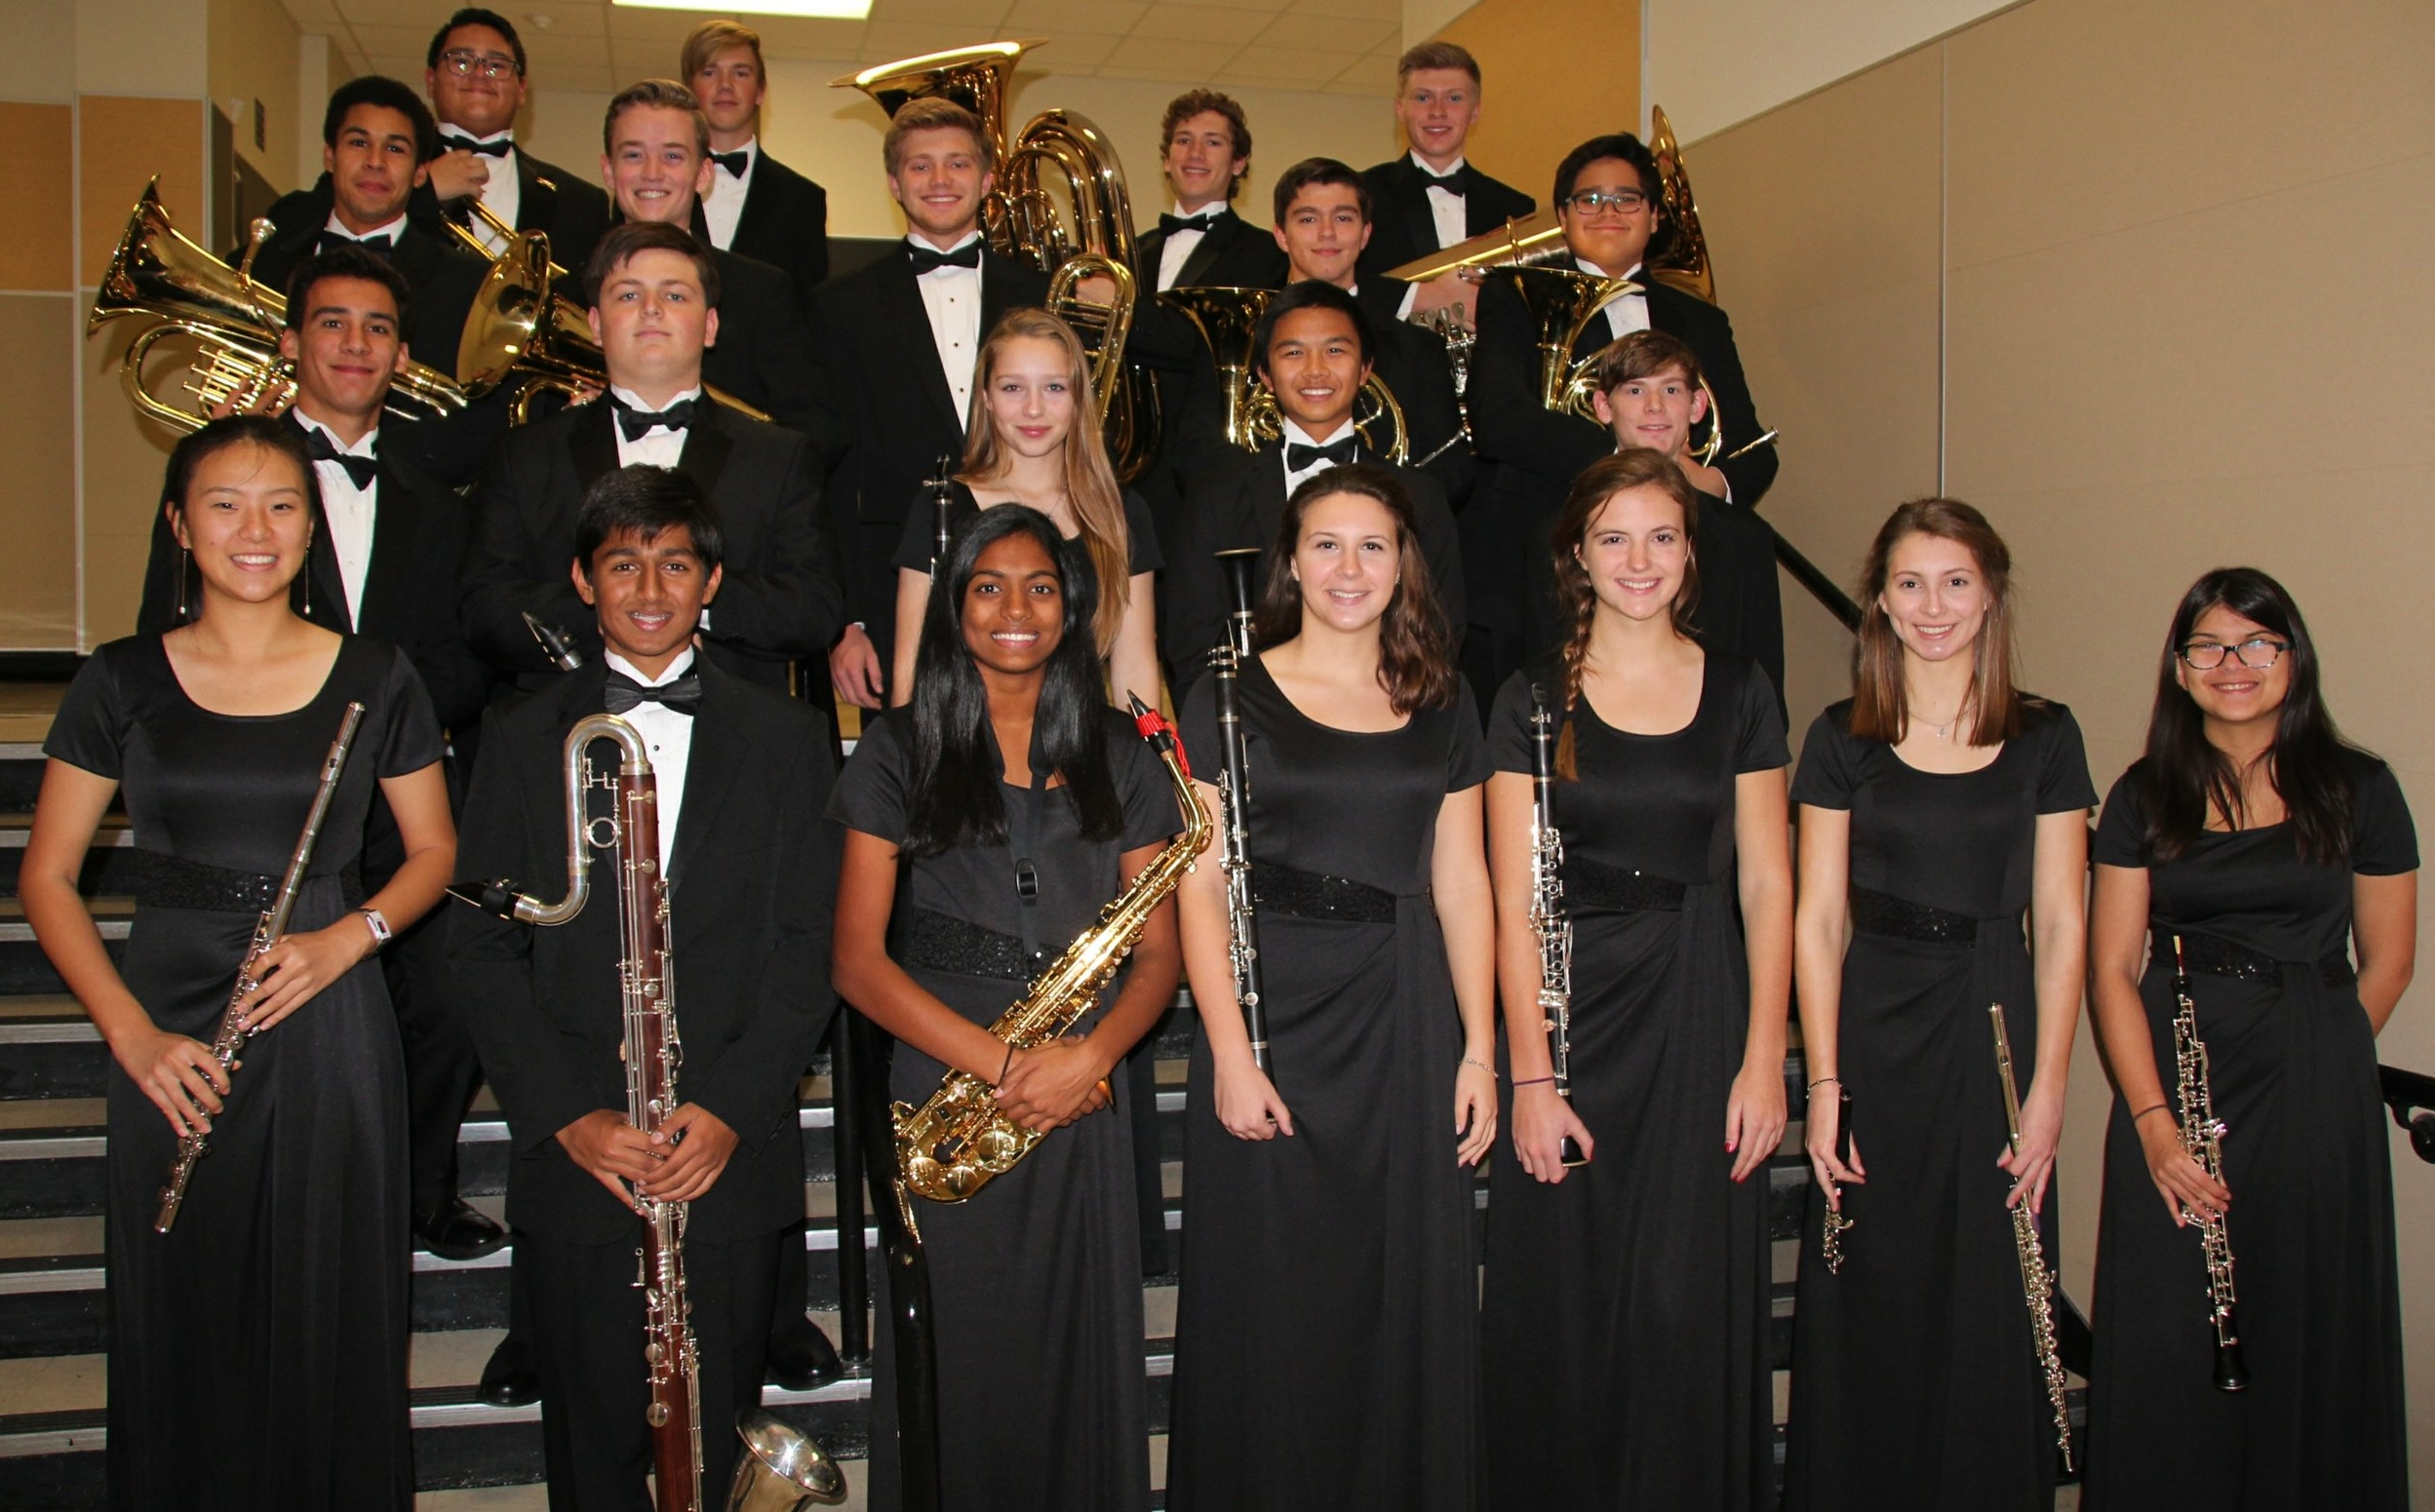 Lake Travis High School TMEA All-Region 32 band members:  Noah Aguillon *,  Chris Plummer ,  Hunter Teel *,  Cole Gleason ,  Nick West ,  Drew Spooner ,  Clint Hastings ,  David Hellrung *,  Brandon Aguillon ,  Daniel Urrutia ,  Lance Abbott ,  Johana Macklin ,  Derrin Ngo *,  Jon Ballard ,  Christine Wang ,  Afi Dhuka ,  Sreya Ayinala ,  Emma Peterman ,  Ally Morton ,  Aly Ruiz * and  River Aguirre   (*advanced to Area competition)